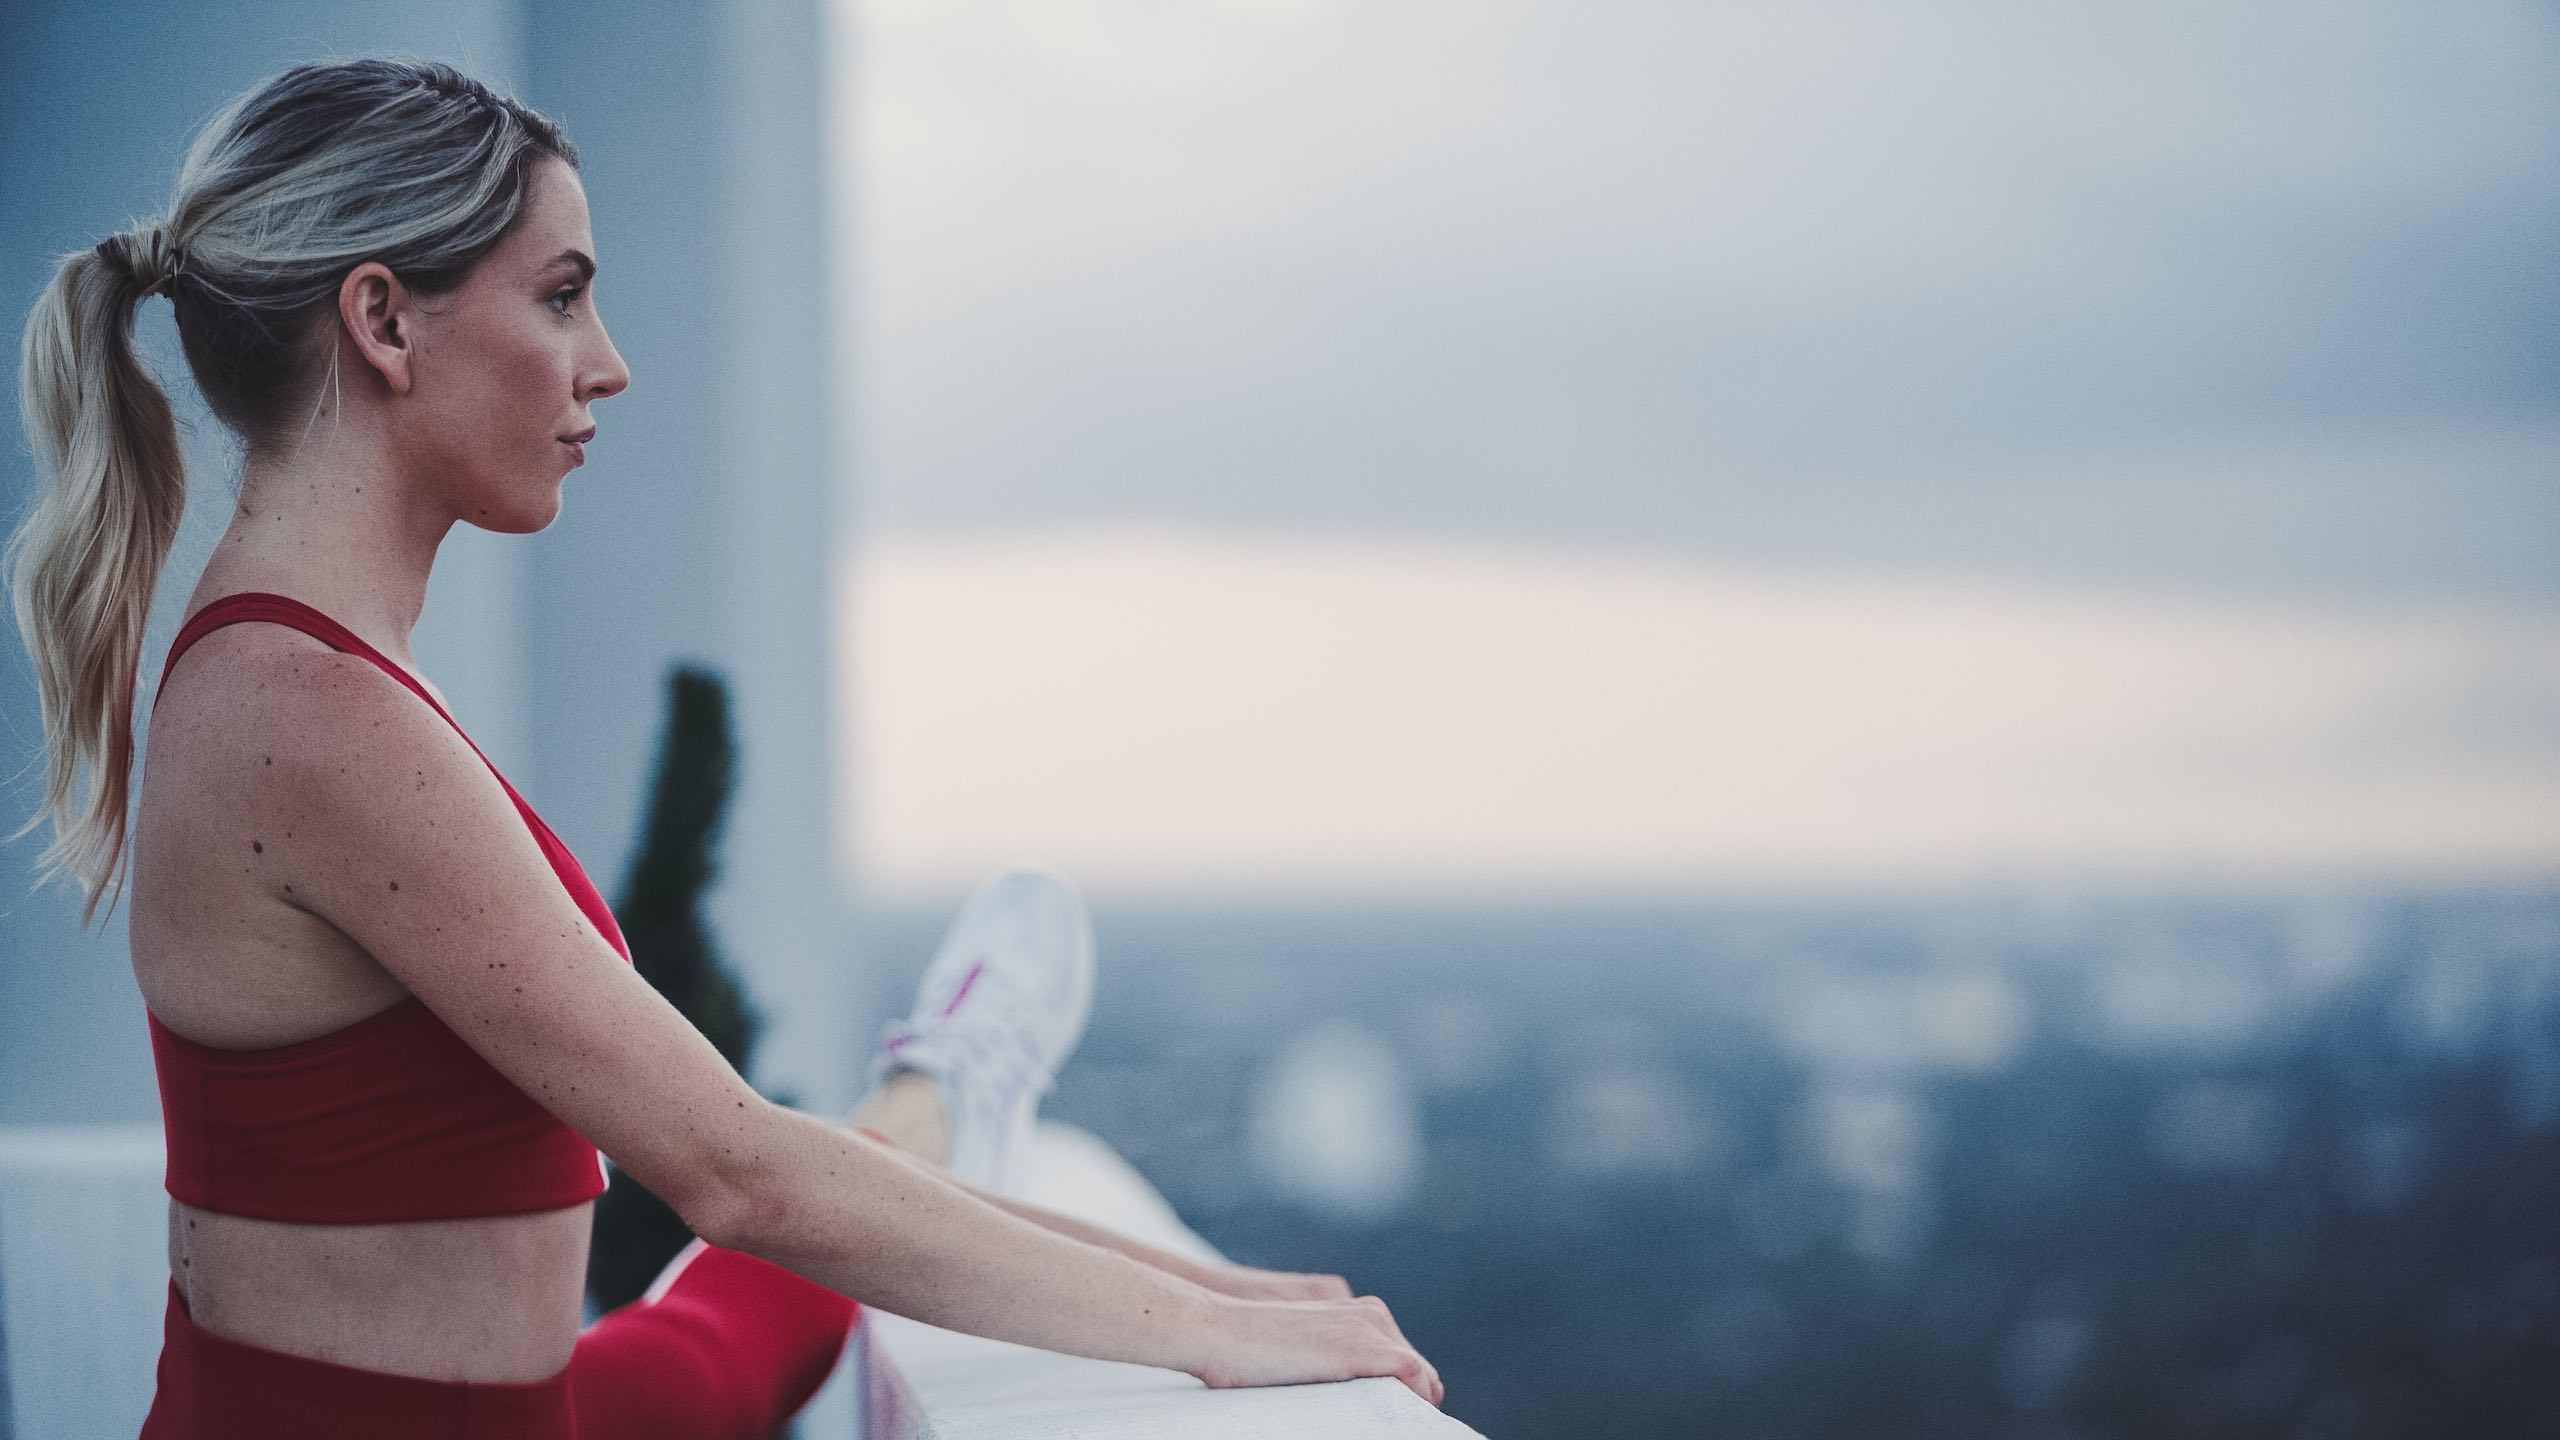 Woman In Red Yoga Clothing Stretches Her Leg And Looks Over The City.